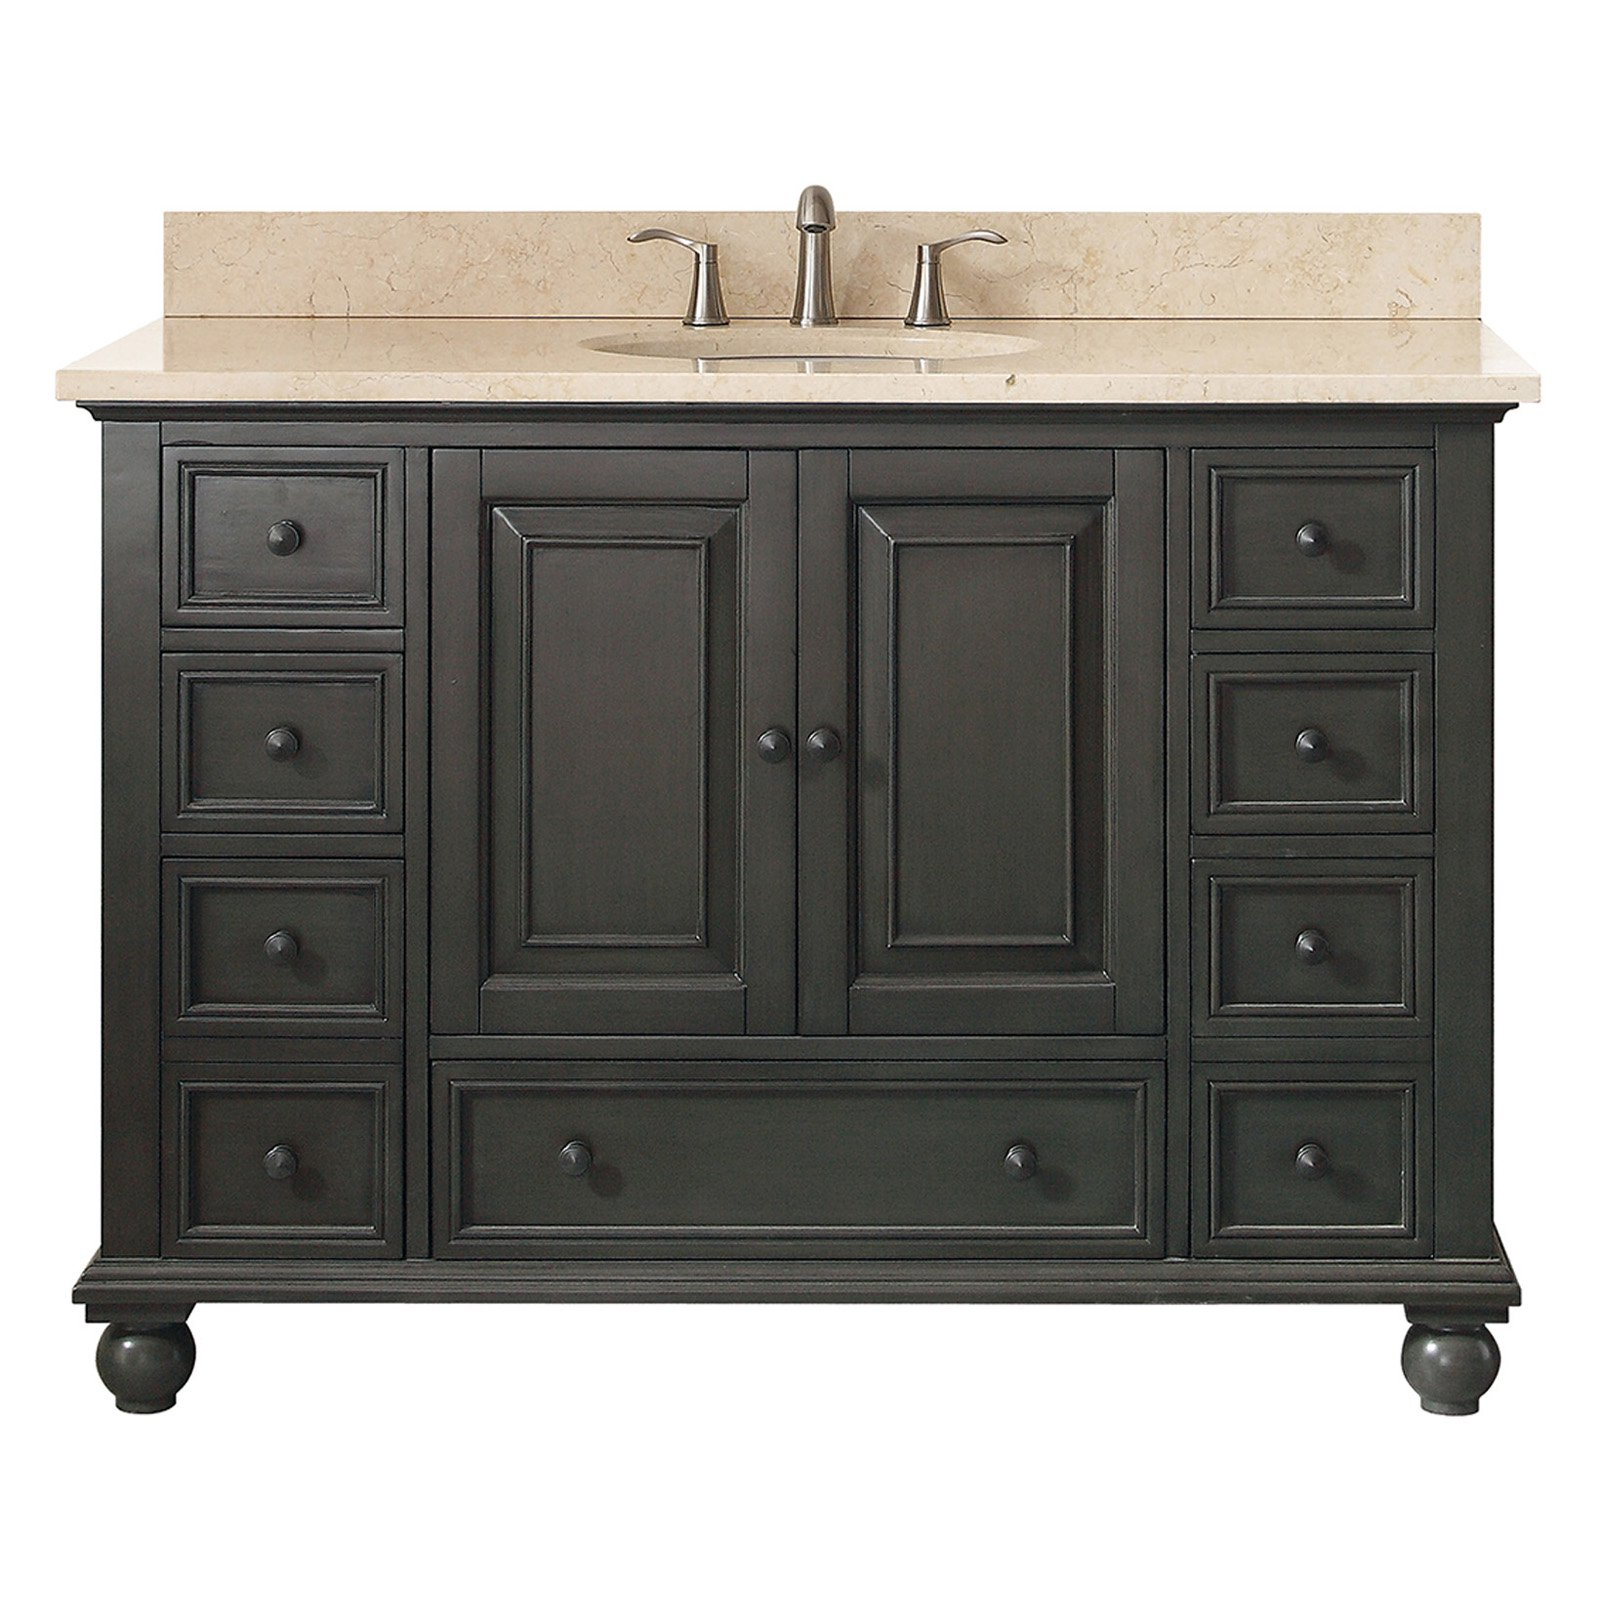 Avanity Thompson 48 in. Single Bathroom Vanity Galala